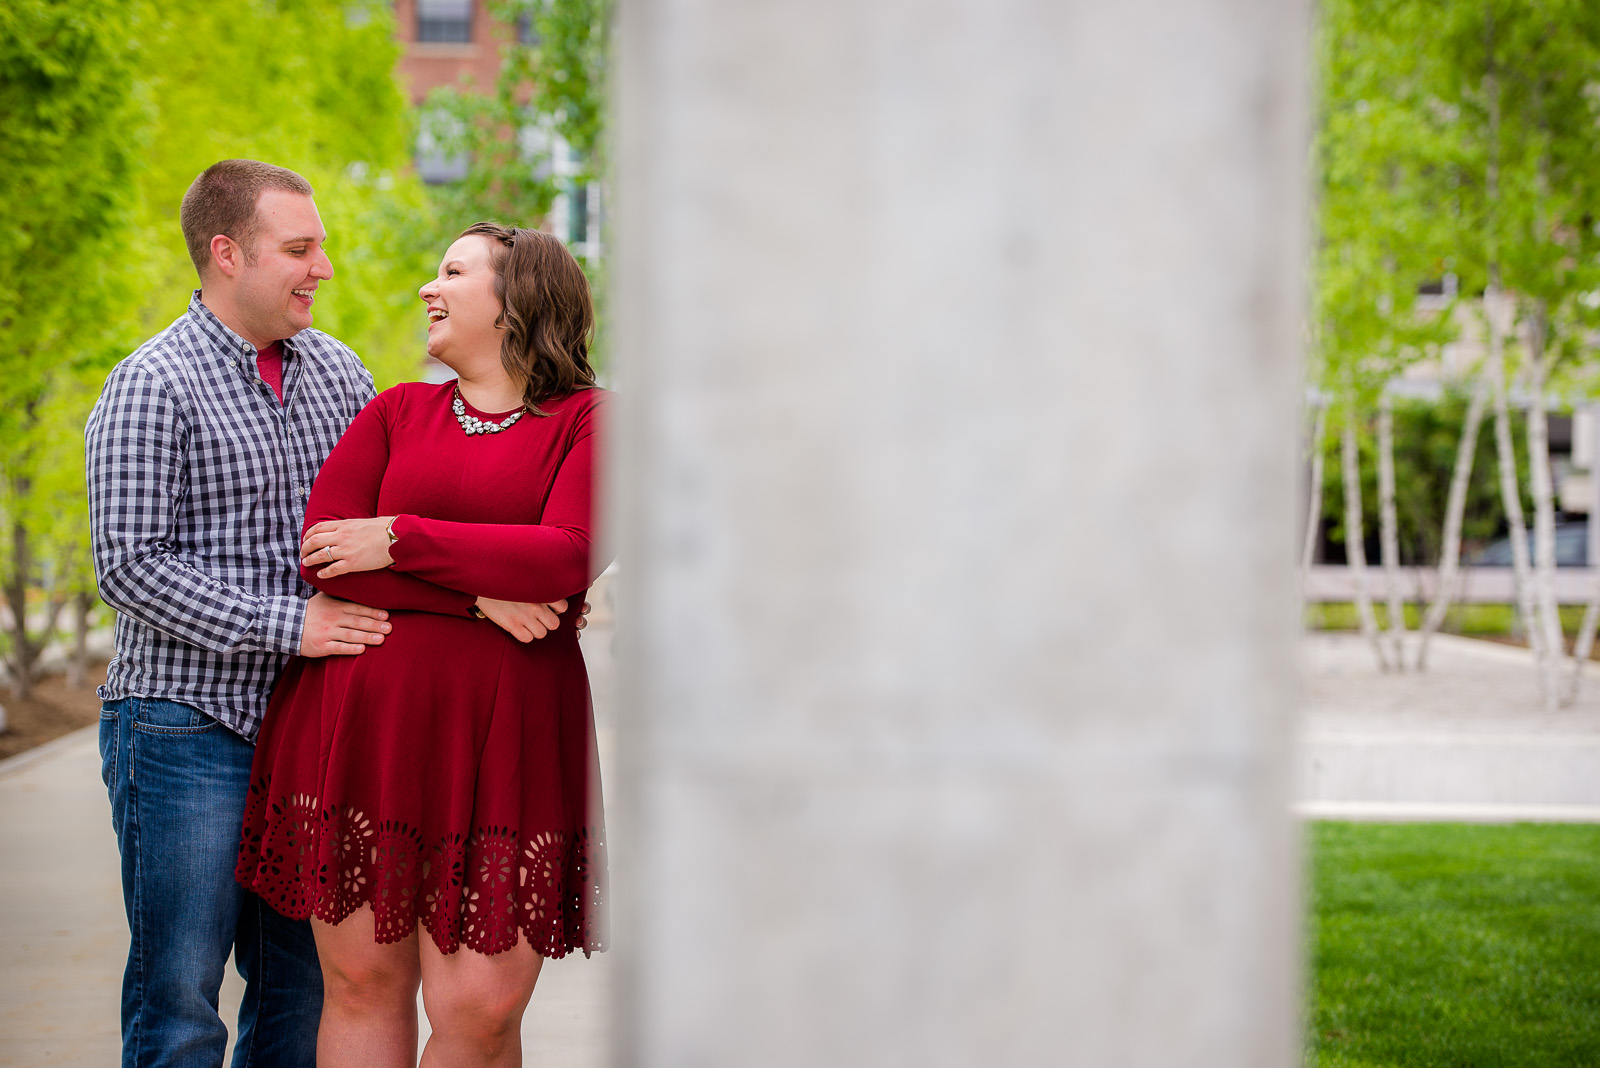 Eric_and_Christy_Photography_Blog_Stacey_Geoff_Engagement-8